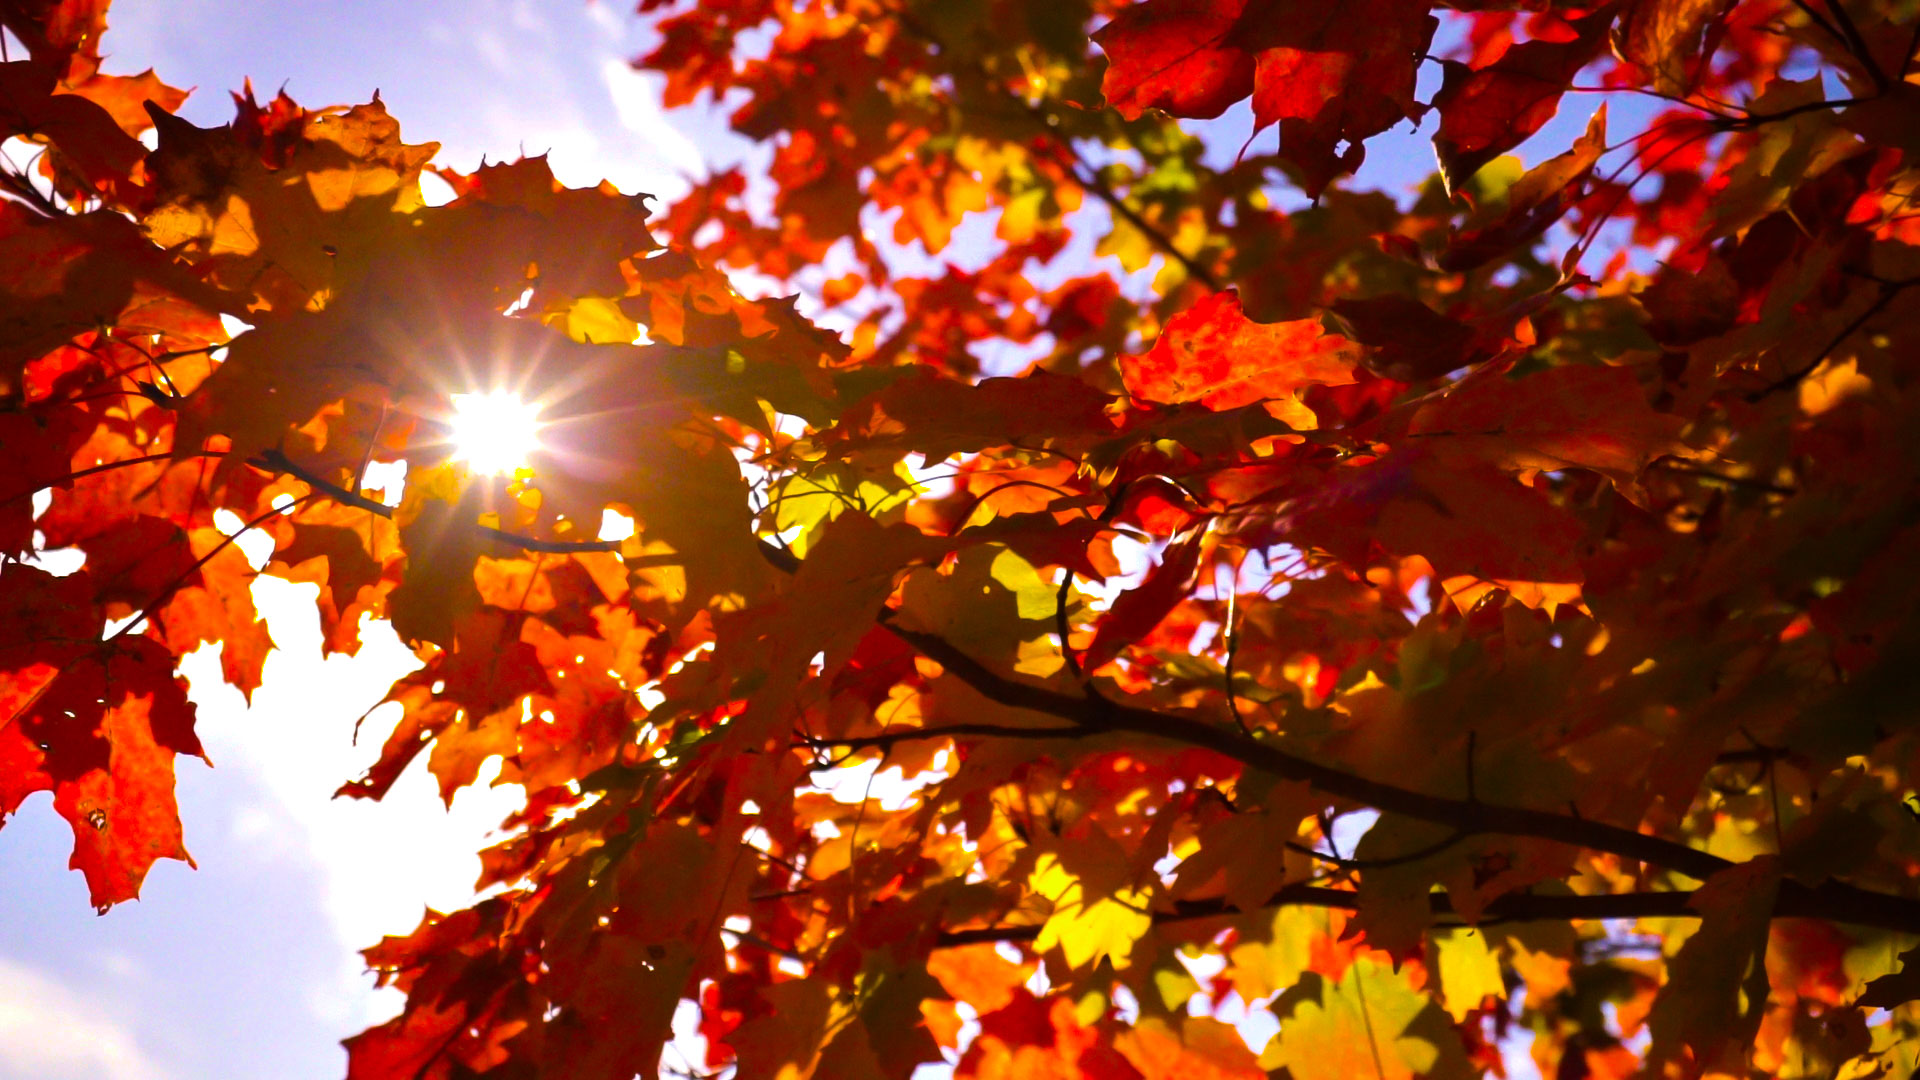 sunburst-leaves-focus (1).jpg